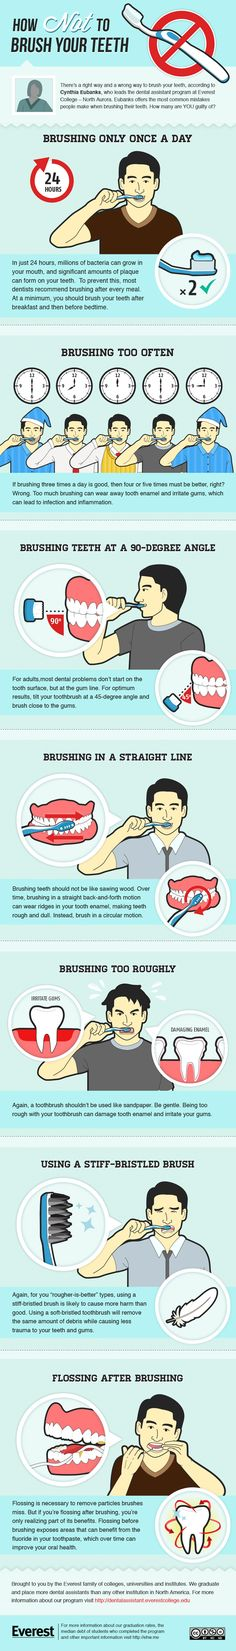 Tooth Brushing 101 - Simple, safe and easy guide that educates us about the dos and donts of excellent oral hygiene. Arm your brush and go. Health Adults Health For Kids Health Kindergarten Care Clean Teeth Care Display Care Routine Oral Health, Dental Health, Dental Care, Health Tips, Teeth Health, Dental Assistant, Dental Hygienist, Dental Facts, Teeth Care